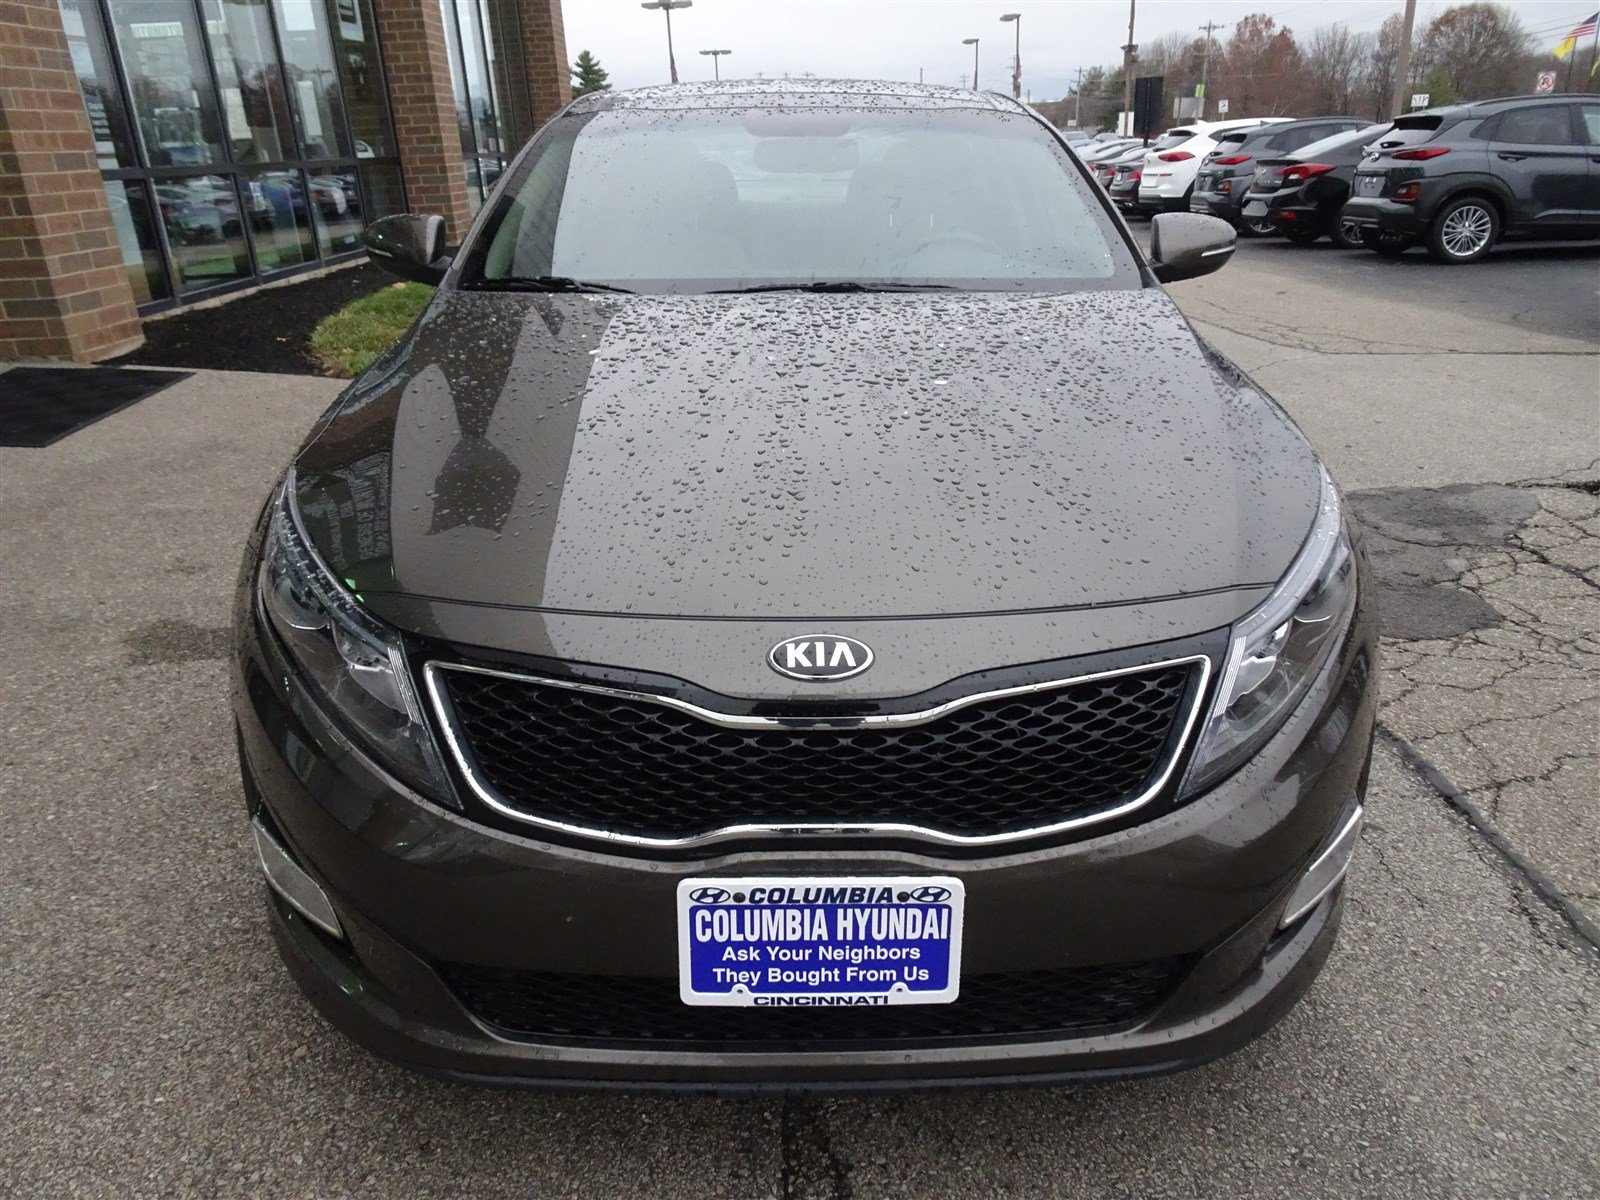 Kia Dealers Cincinnati New Used 2014 Kia Optima Ex